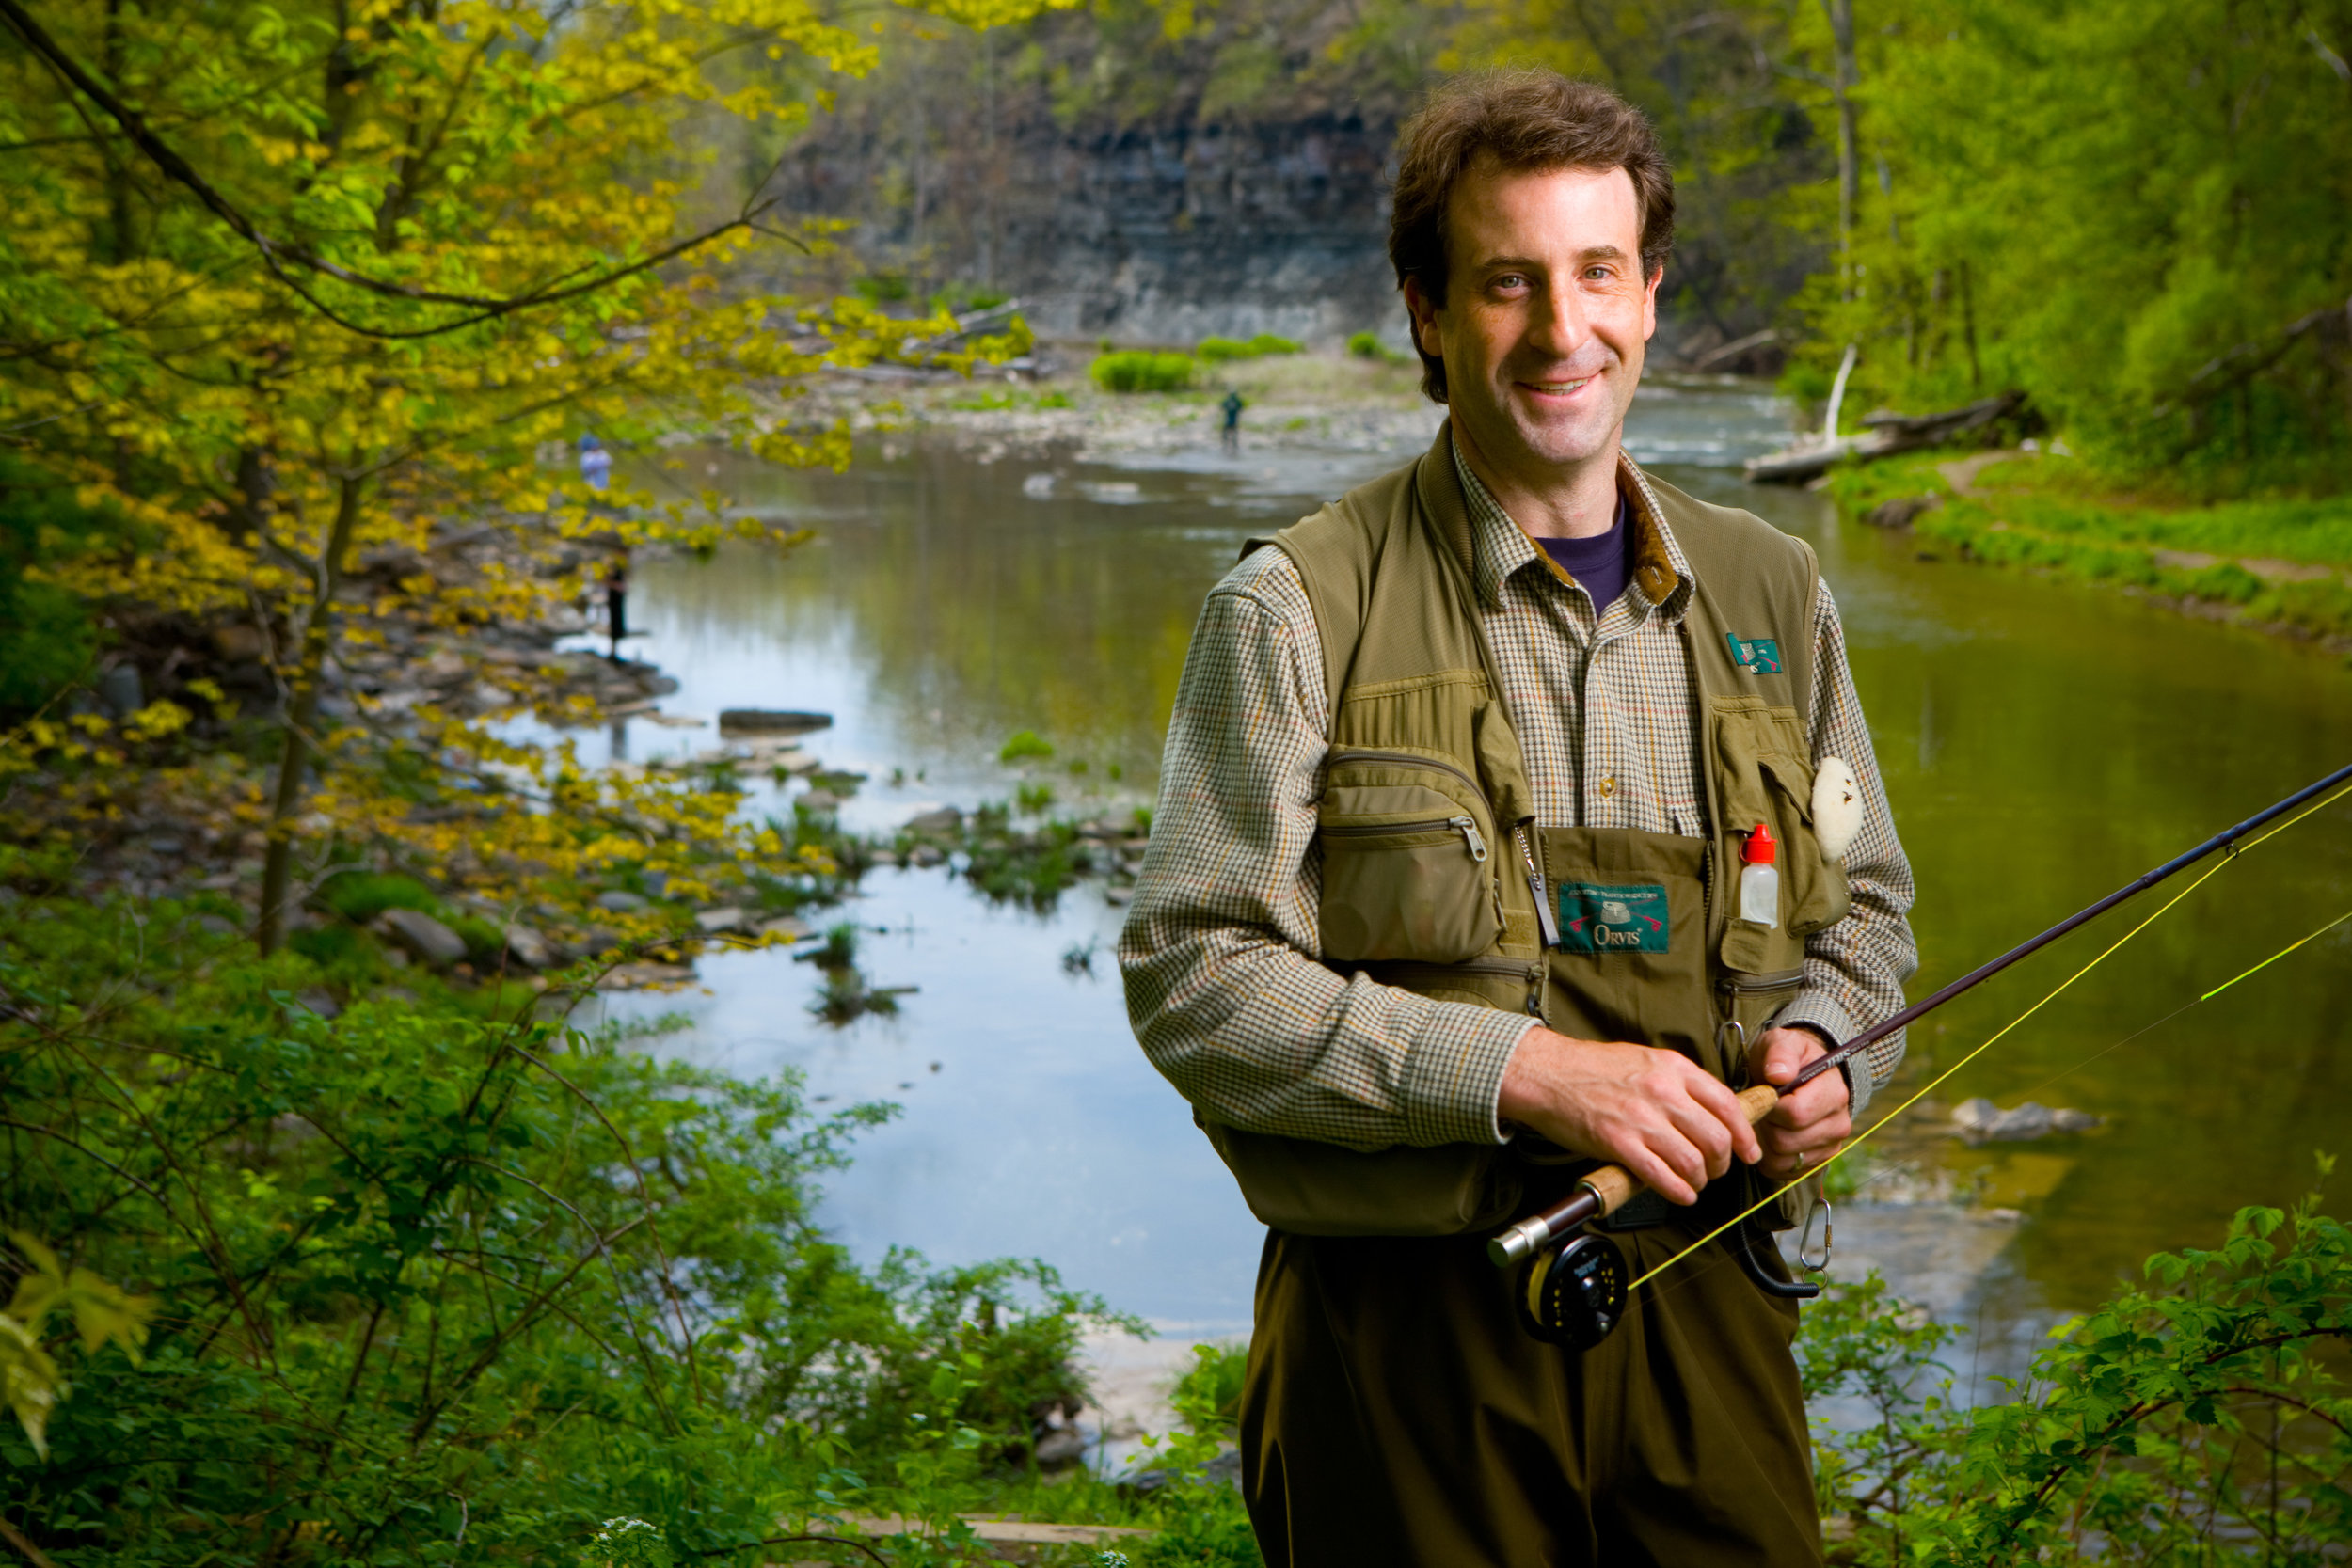 Matthew Bonner, Professor of Social and Preventative Medicine at the 18 Mile Creek